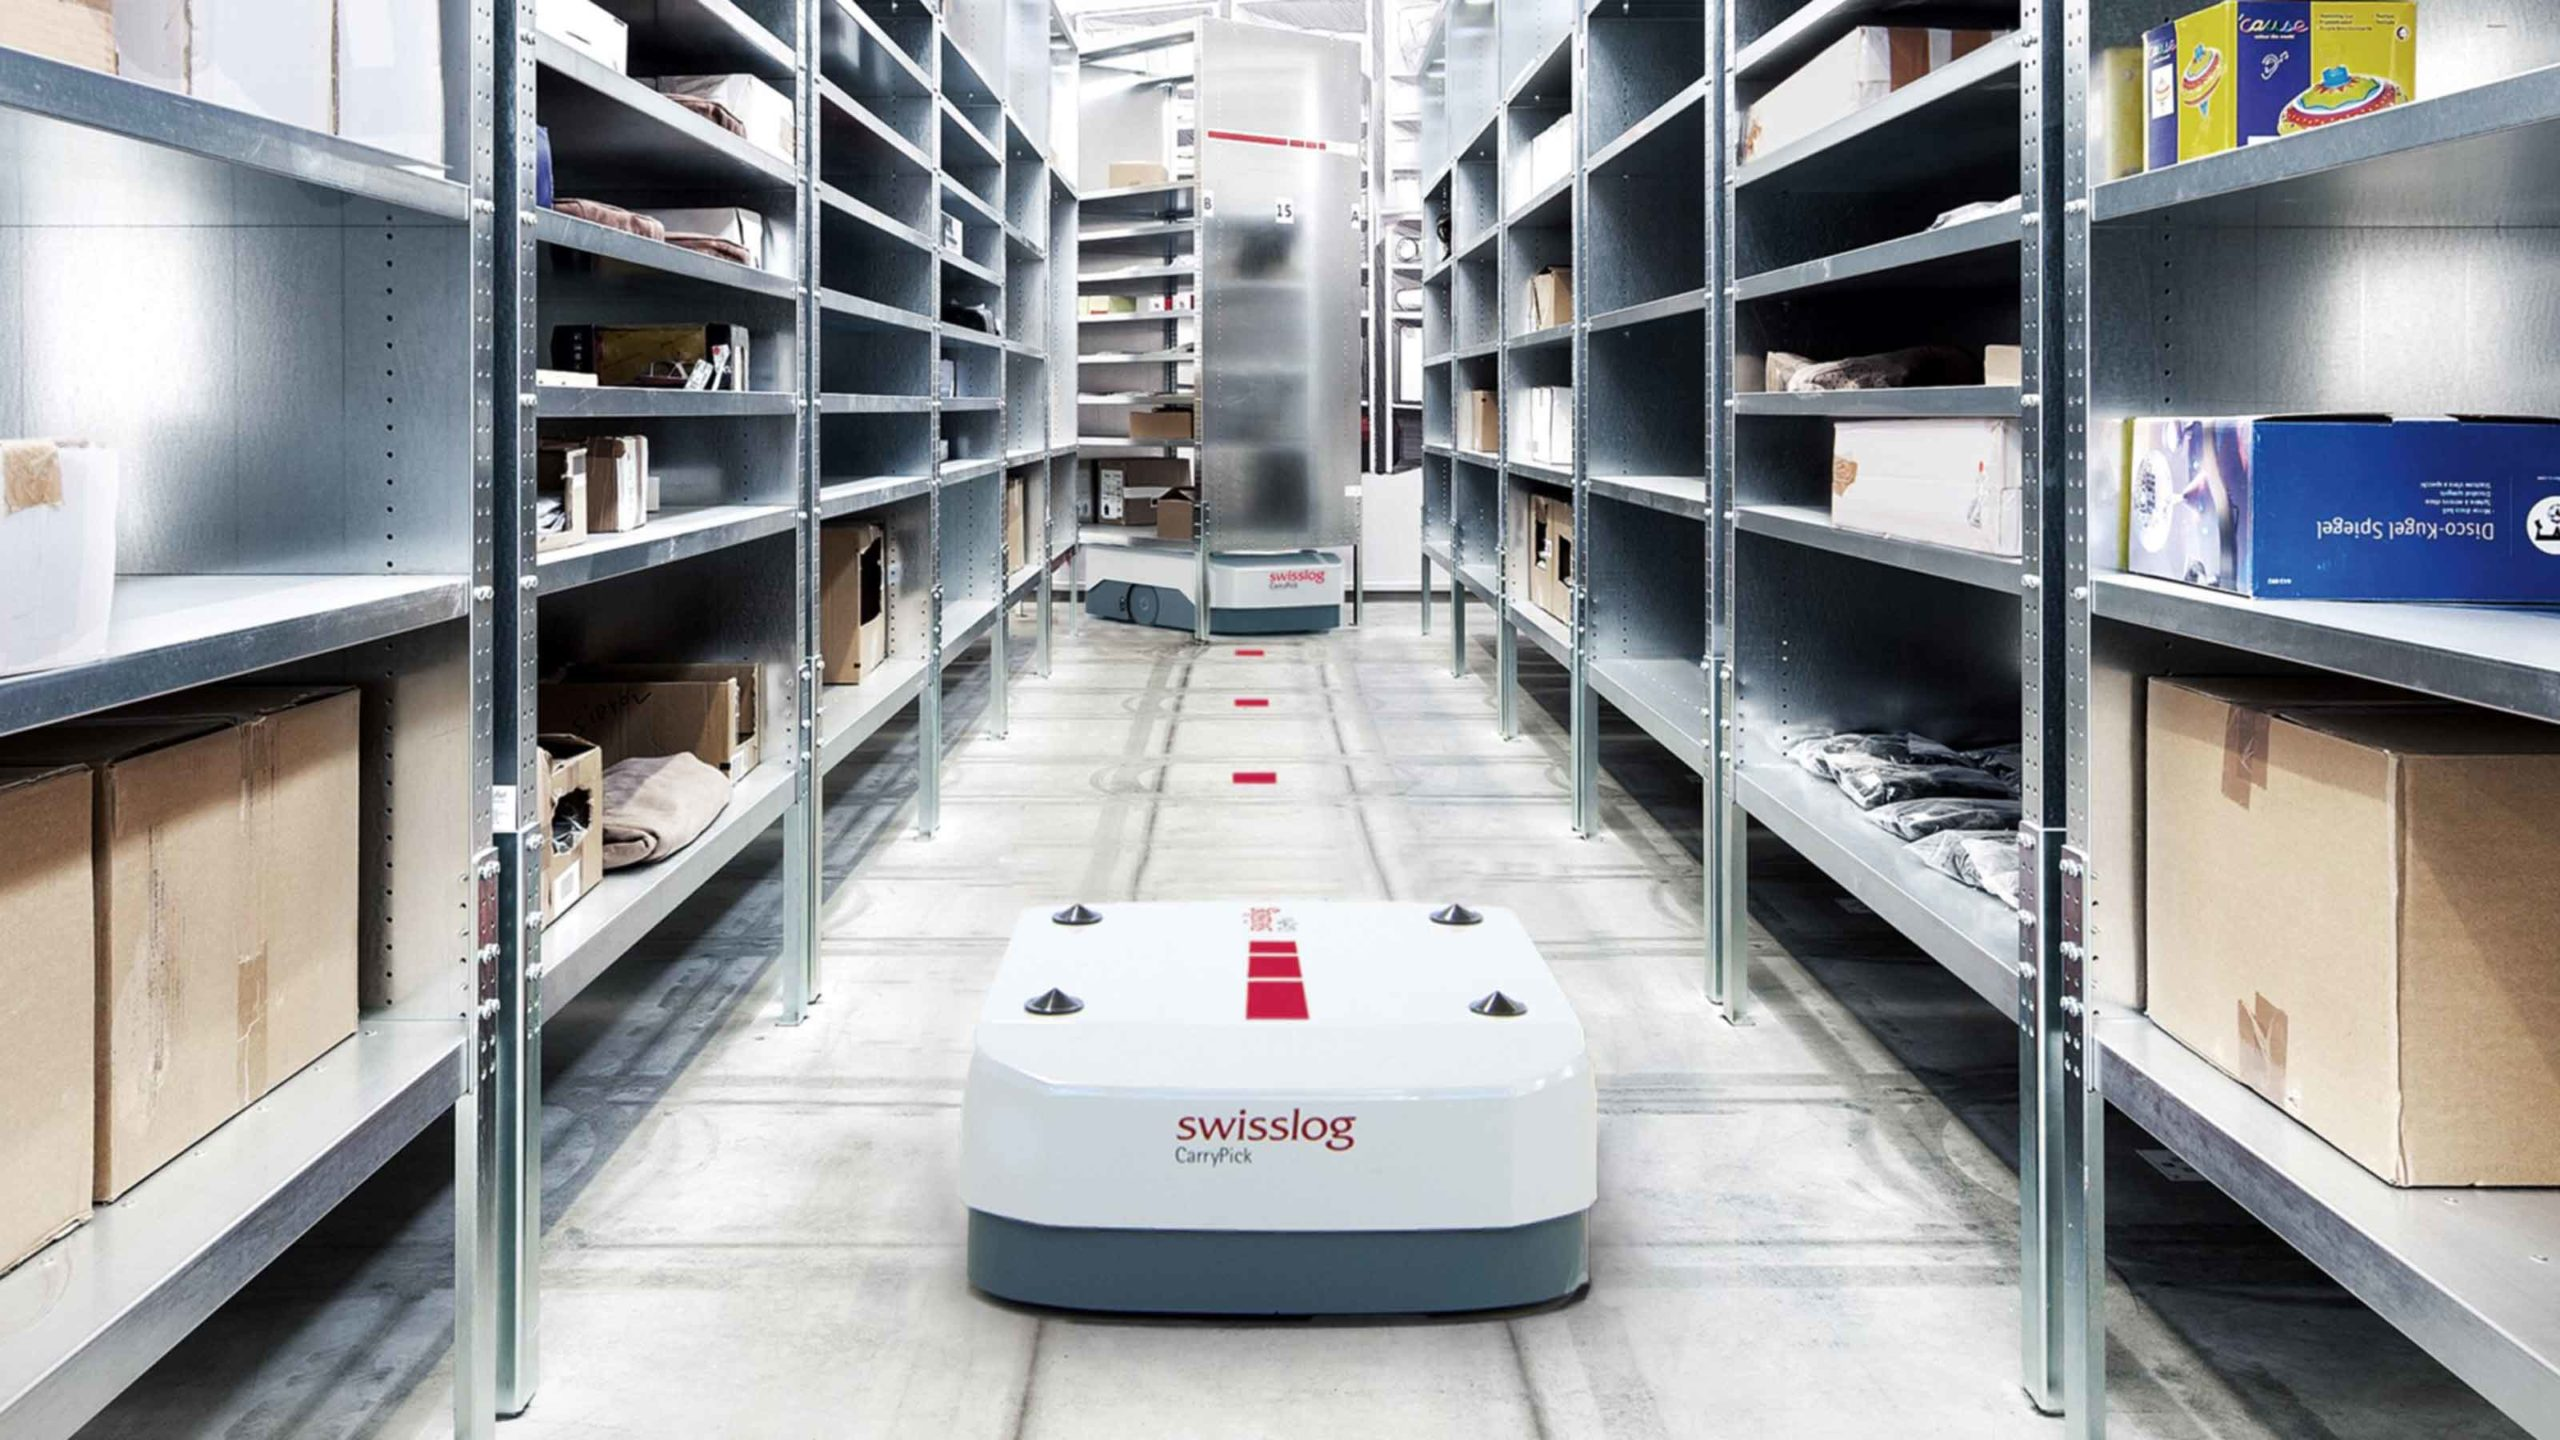 Mobile robot applications to keep growing in 2020